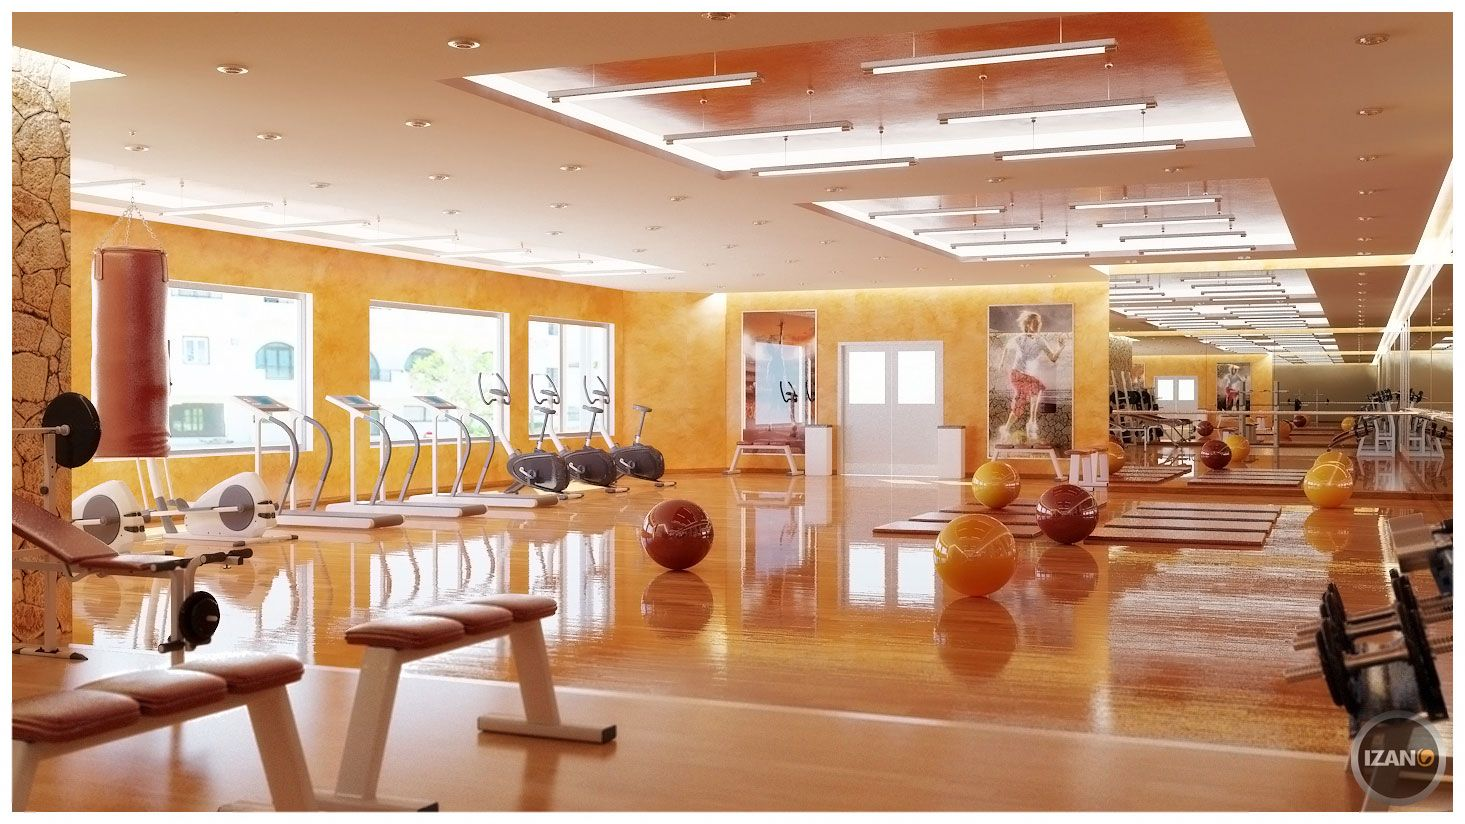 Images about gym s design on pinterest home gyms a gym and search - Interior Exotic Home Gym Room Ideas And Tips Design Lovely Orange Ball Gym Also Modern Treadmills Running With Orange Wall And Parquet Floor